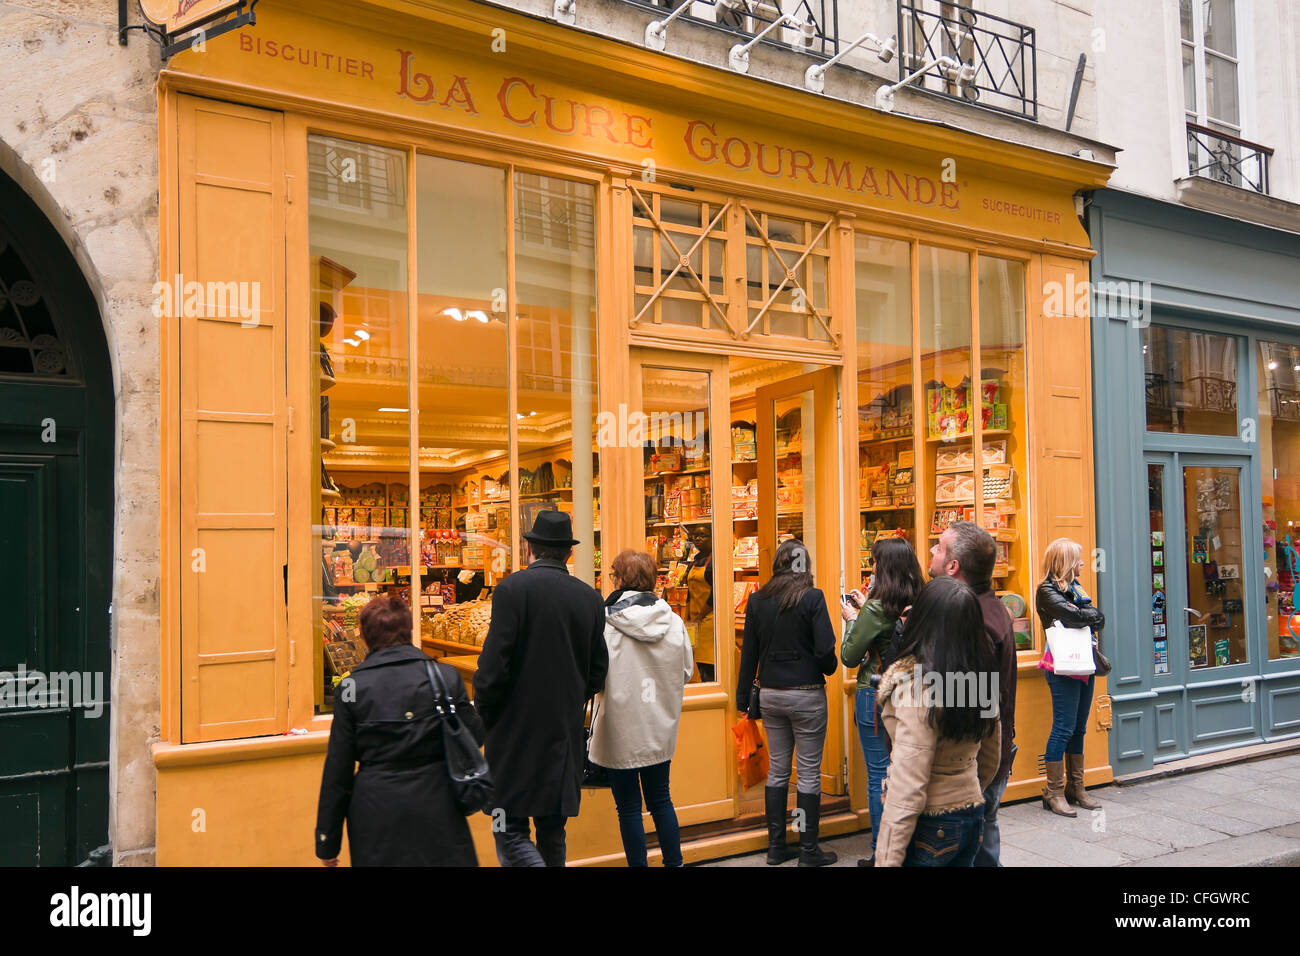 La Cure Gourmande biscuit and chocolate shop - Île Saint-Louis, Paris, France - Stock Image